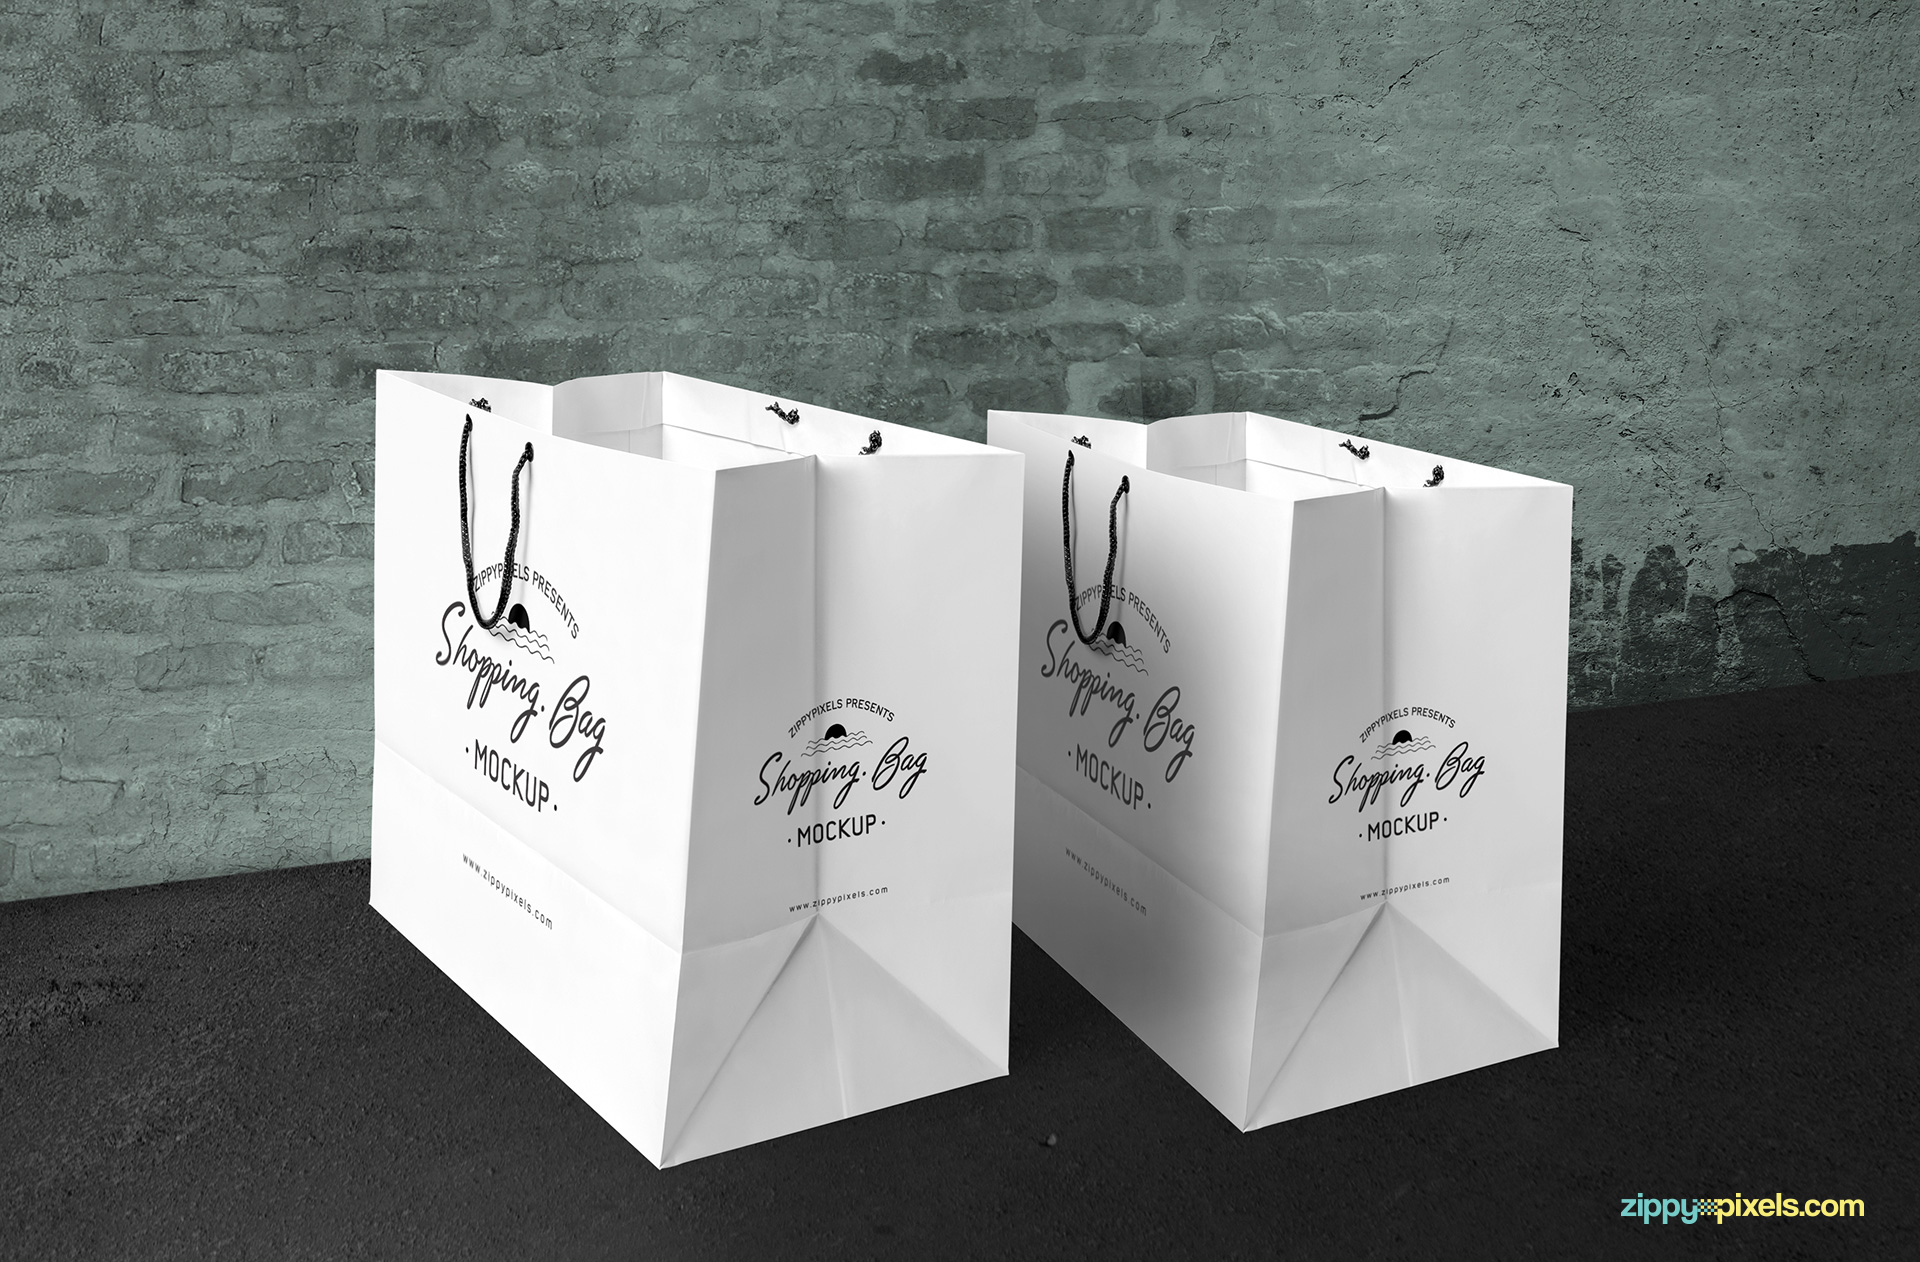 2-shopping-bag-mockups-placed-on-vintage-surface